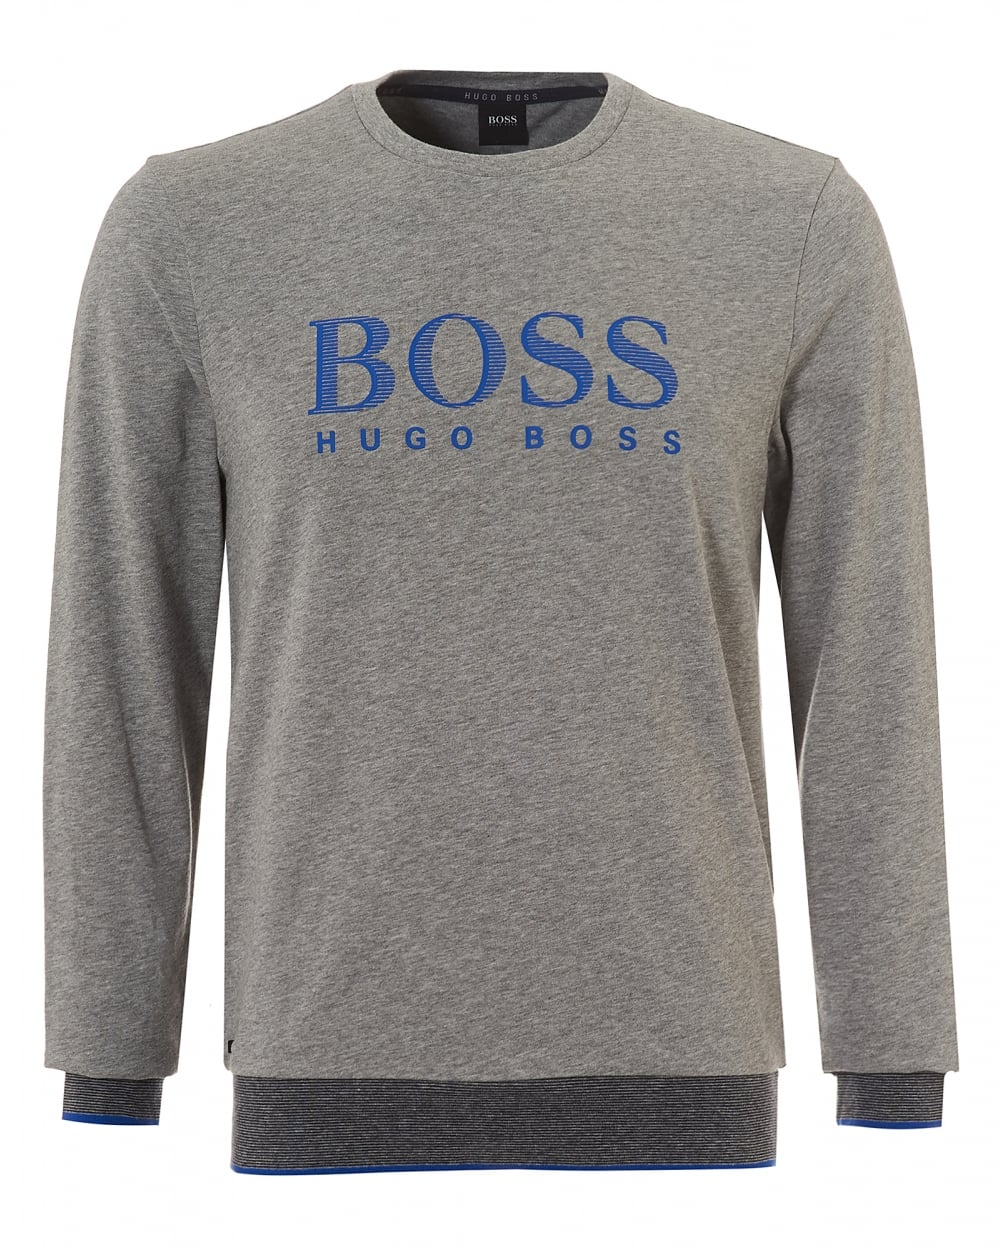 f4ae771ed99 Hugo Boss Black Mens Sweatshirt RN, Crew Neck Logo Grey Sweat